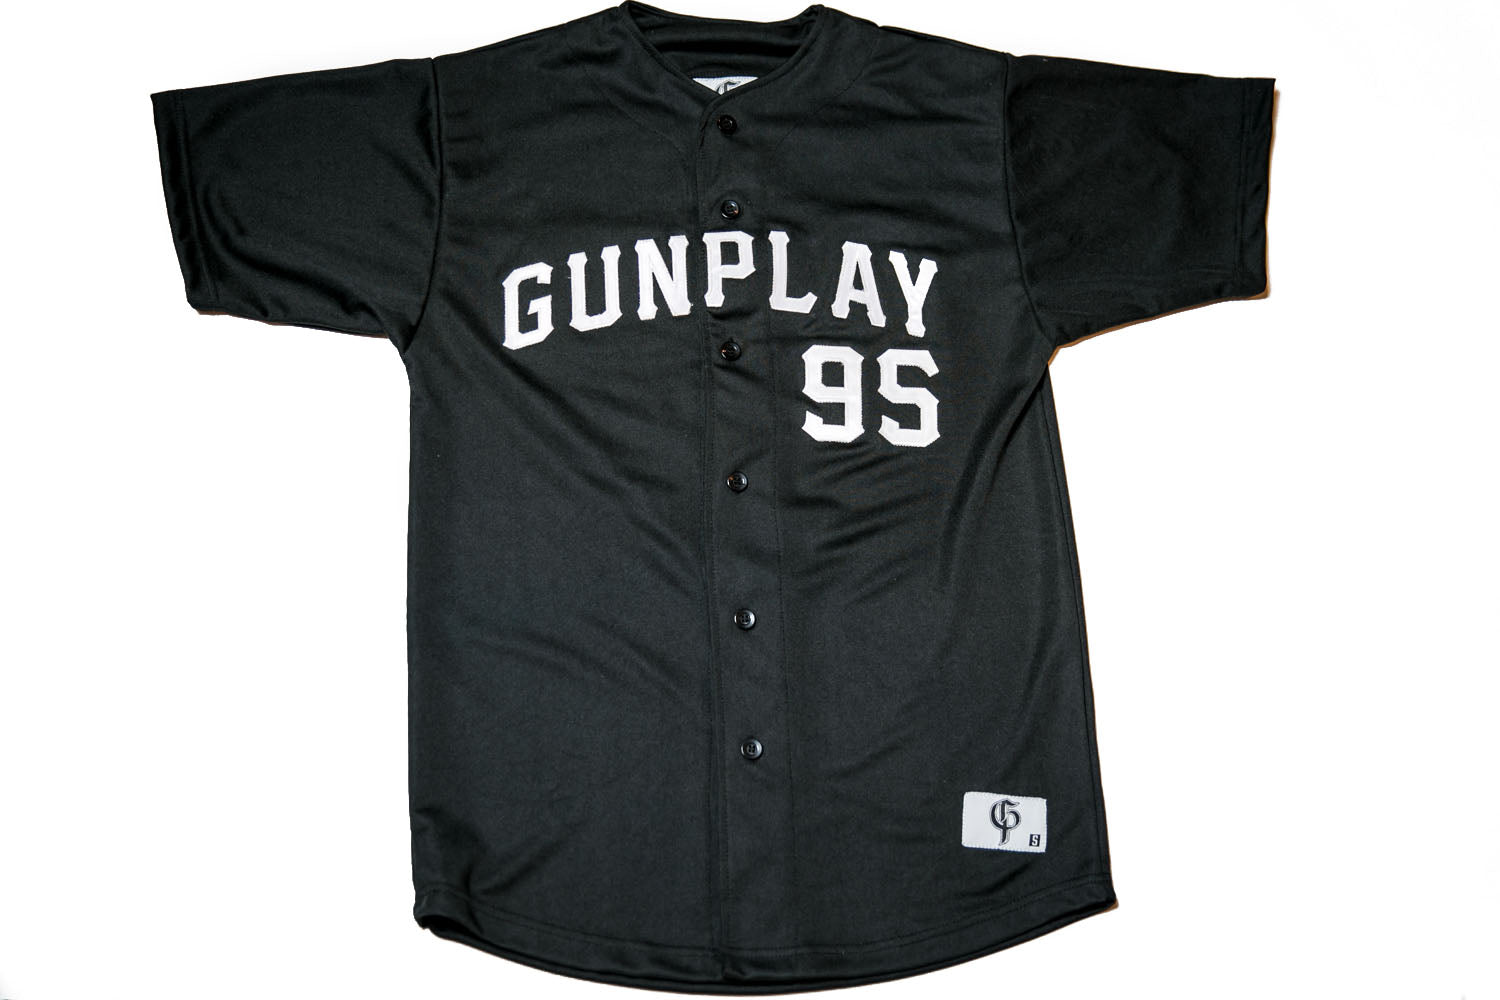 GunPlay 95 Baseball Jersey